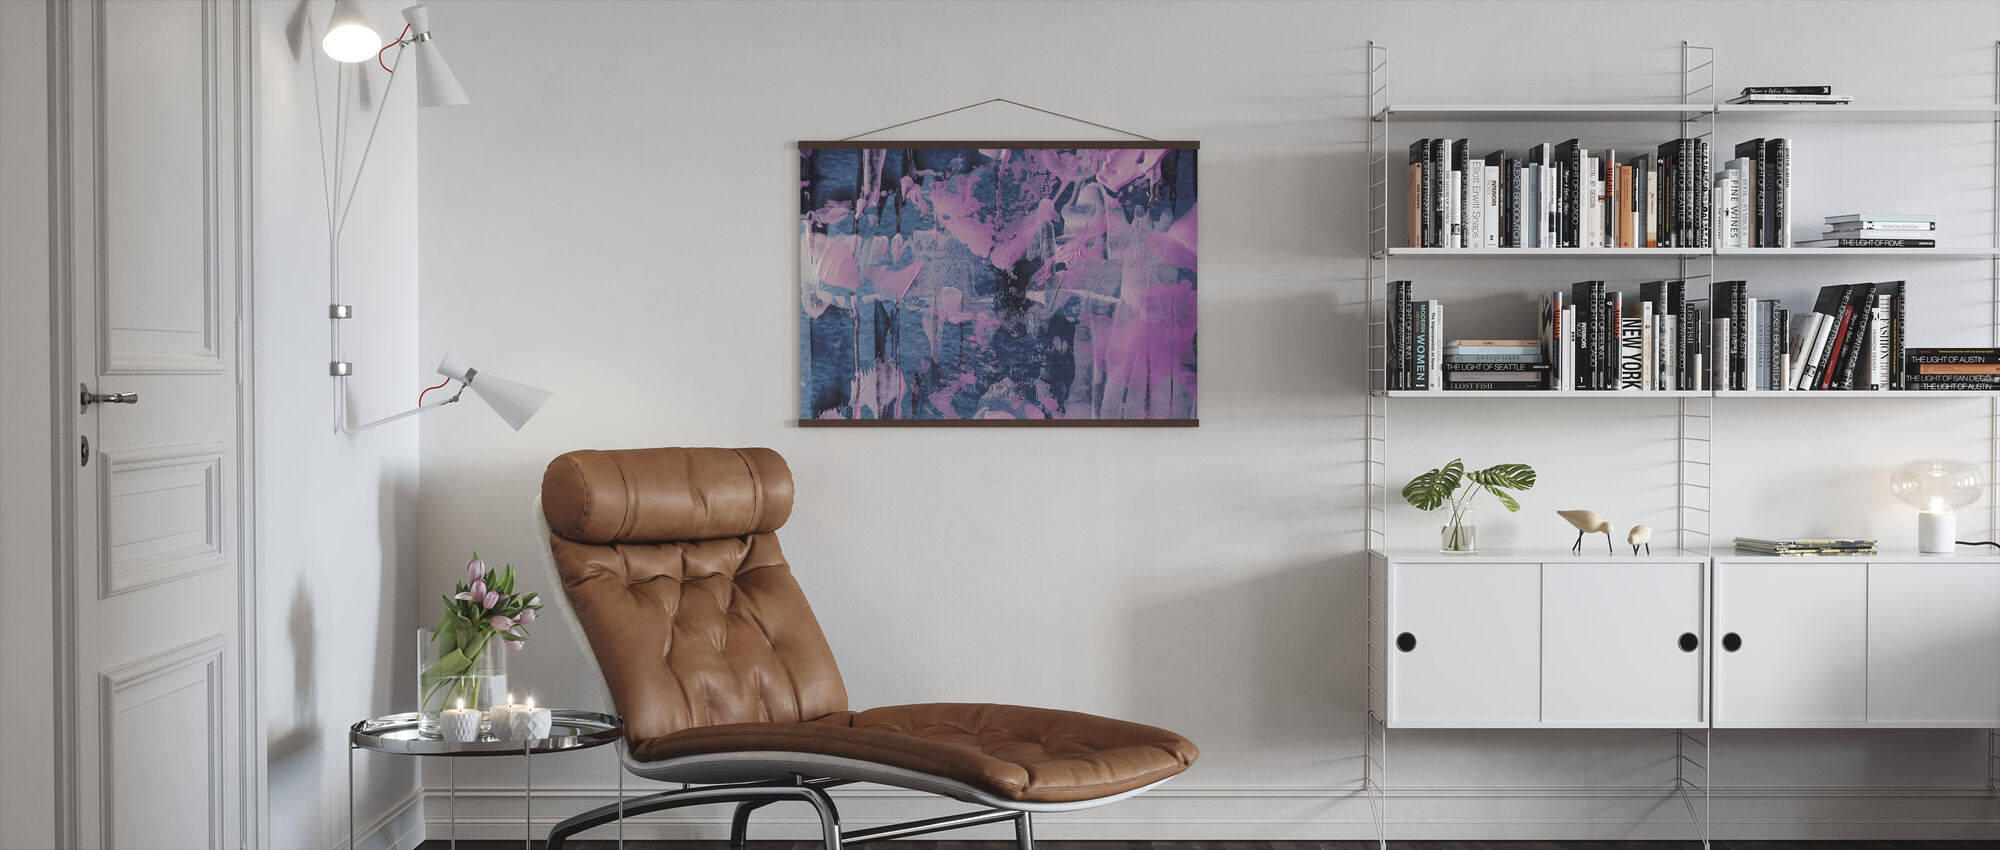 Pinkys Dream - Poster - Living Room